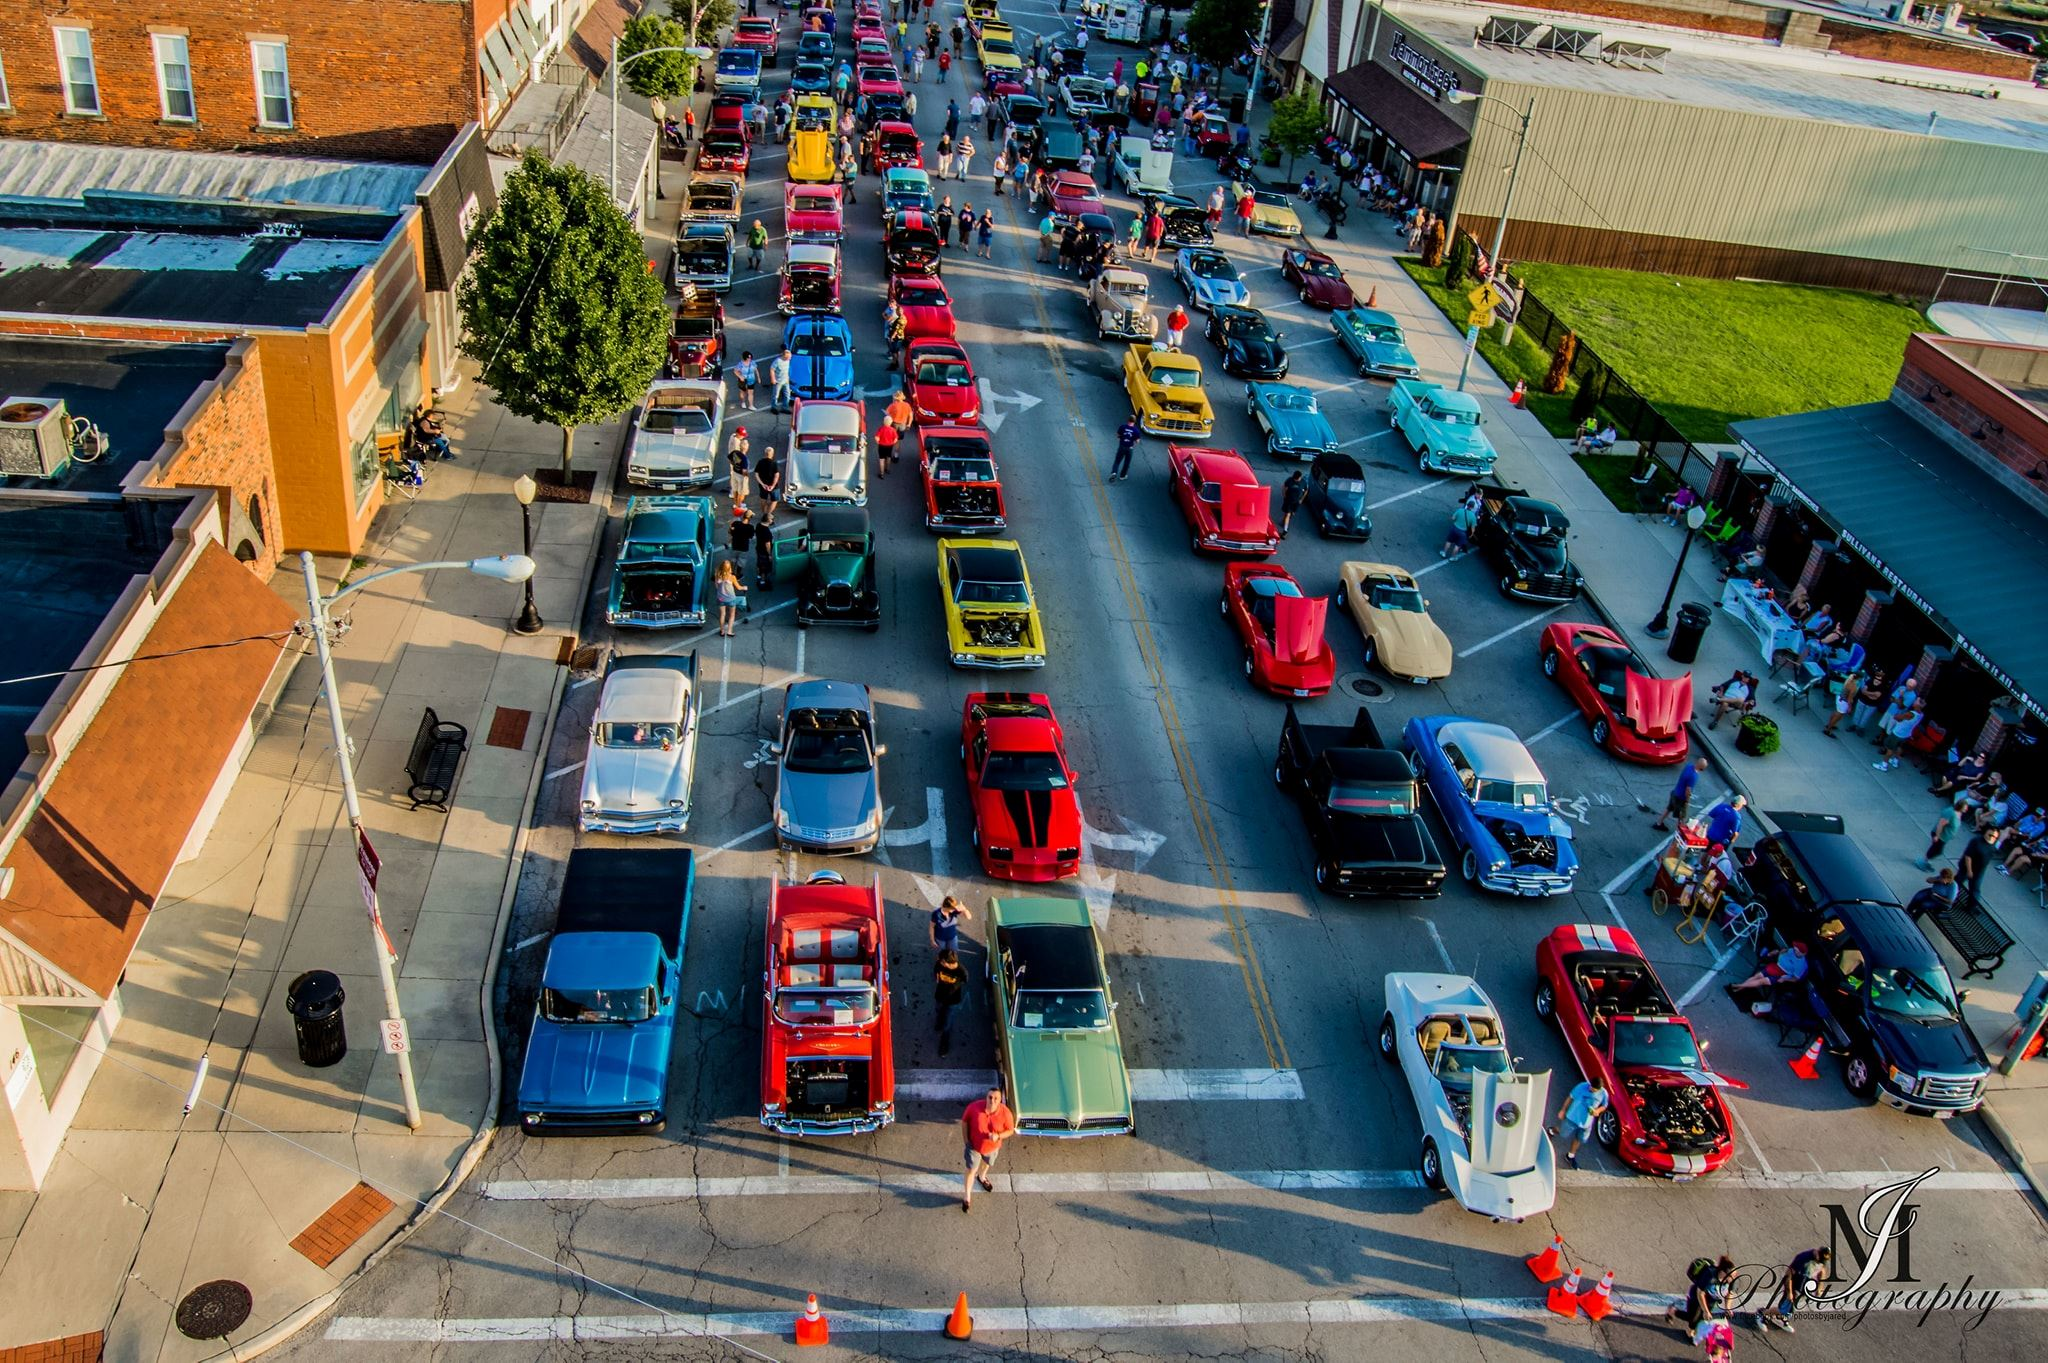 Wauseon Cruise Night, Downtown Wauseon, Every Tuesday 6PM- 9PM through August